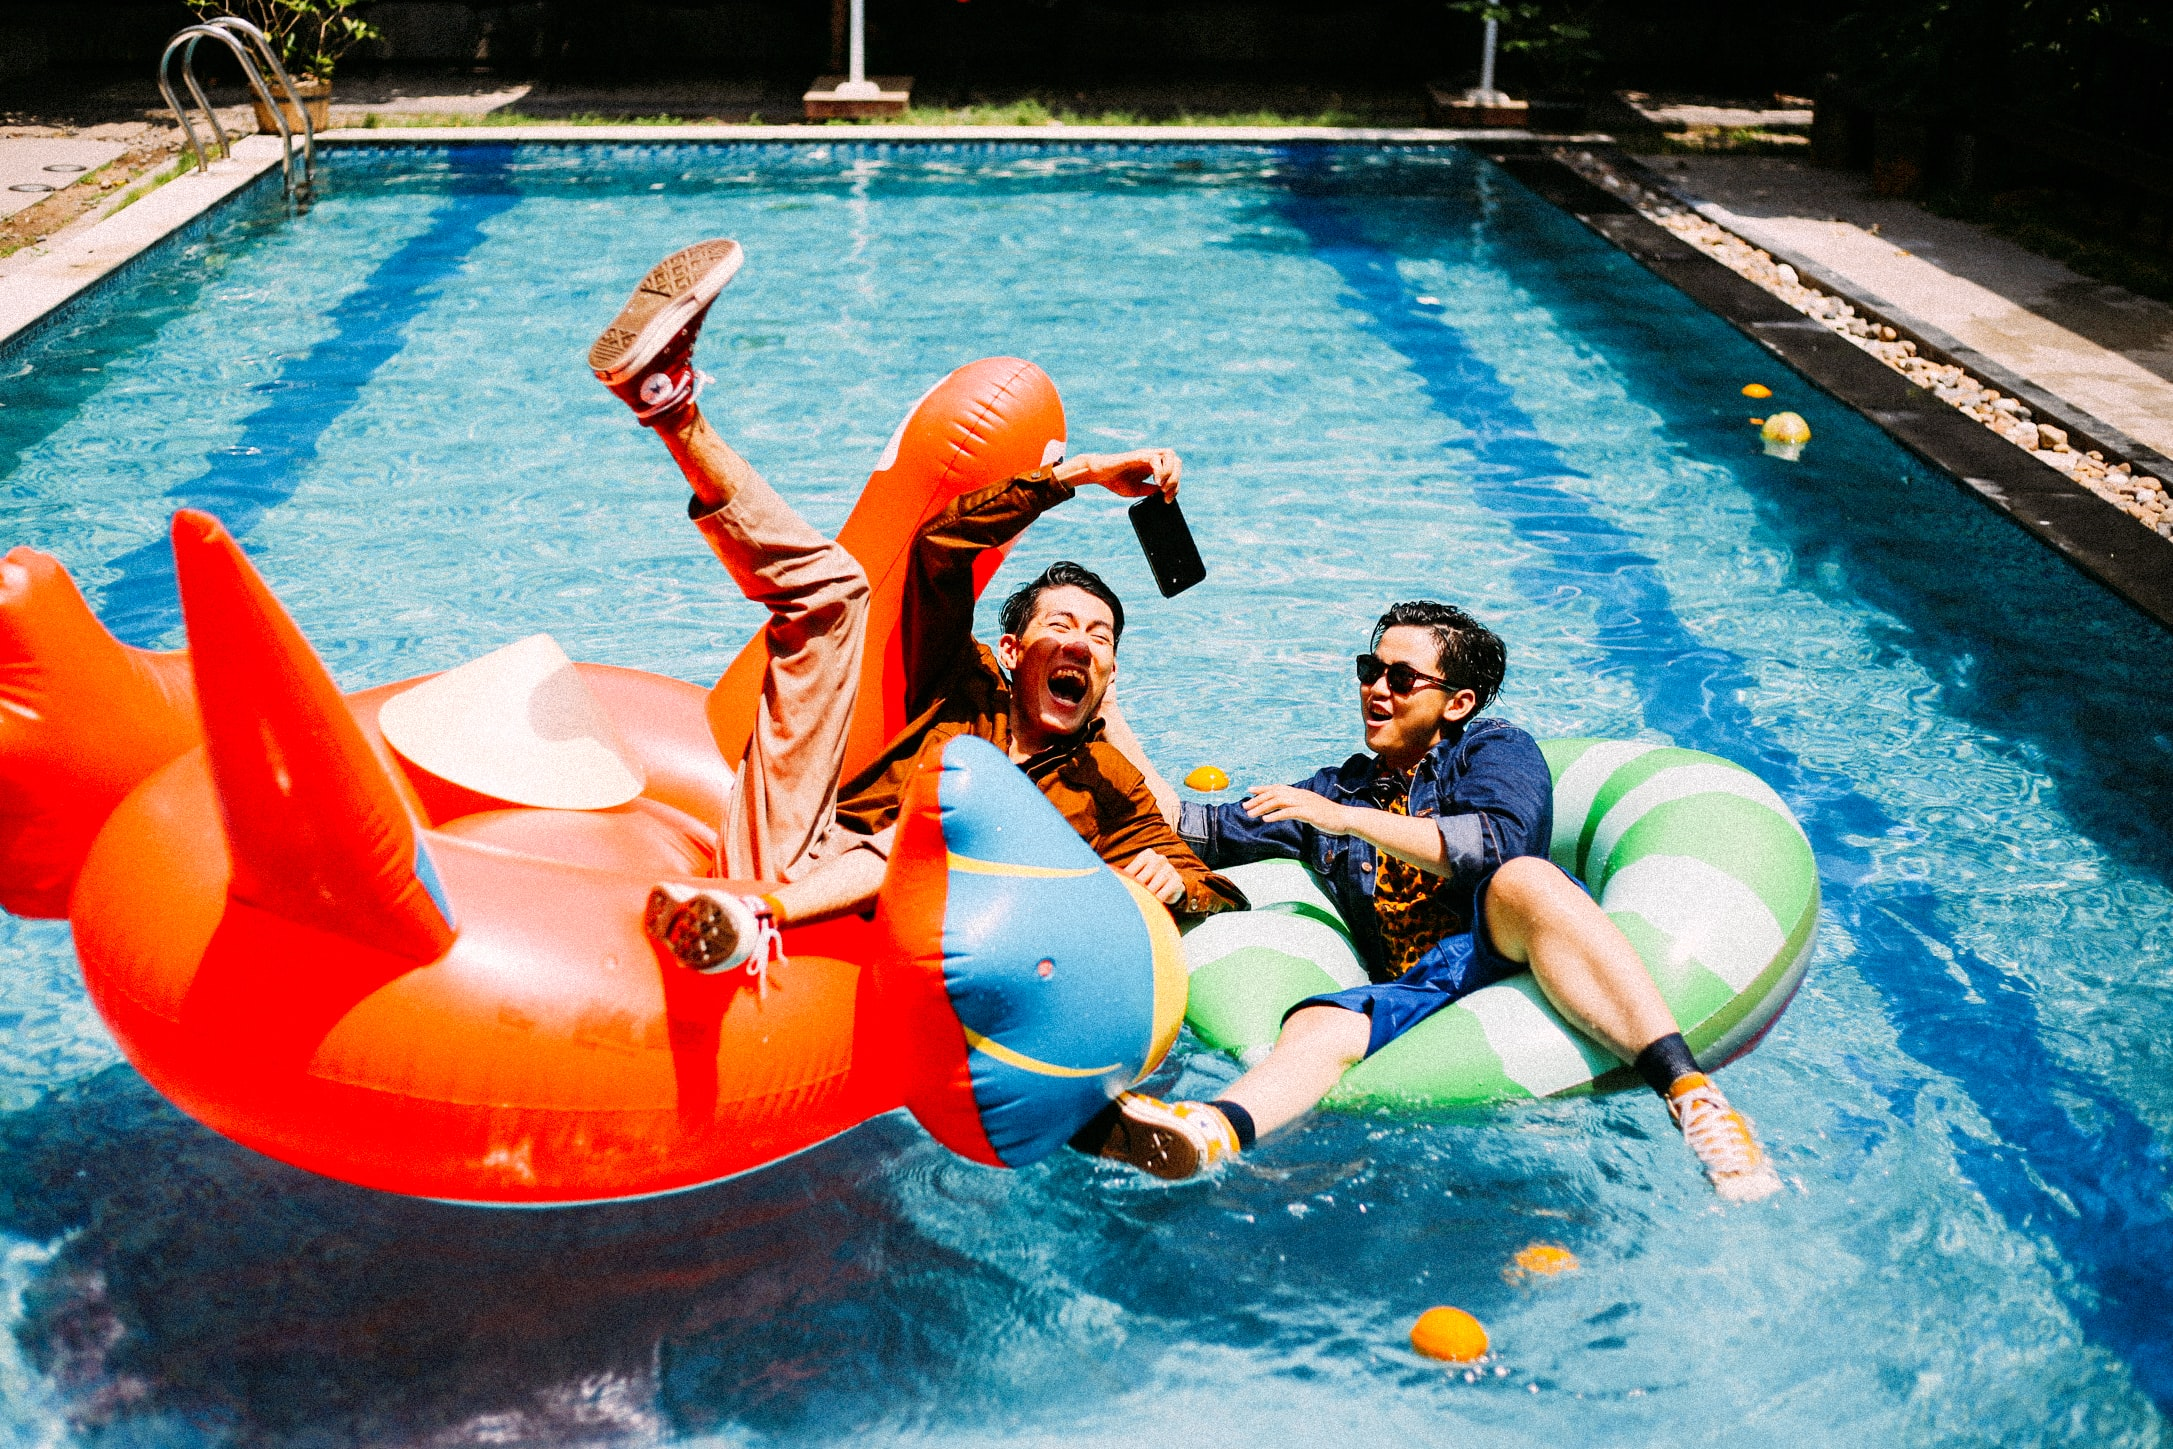 two man on red and green inflatable swim rim during day time